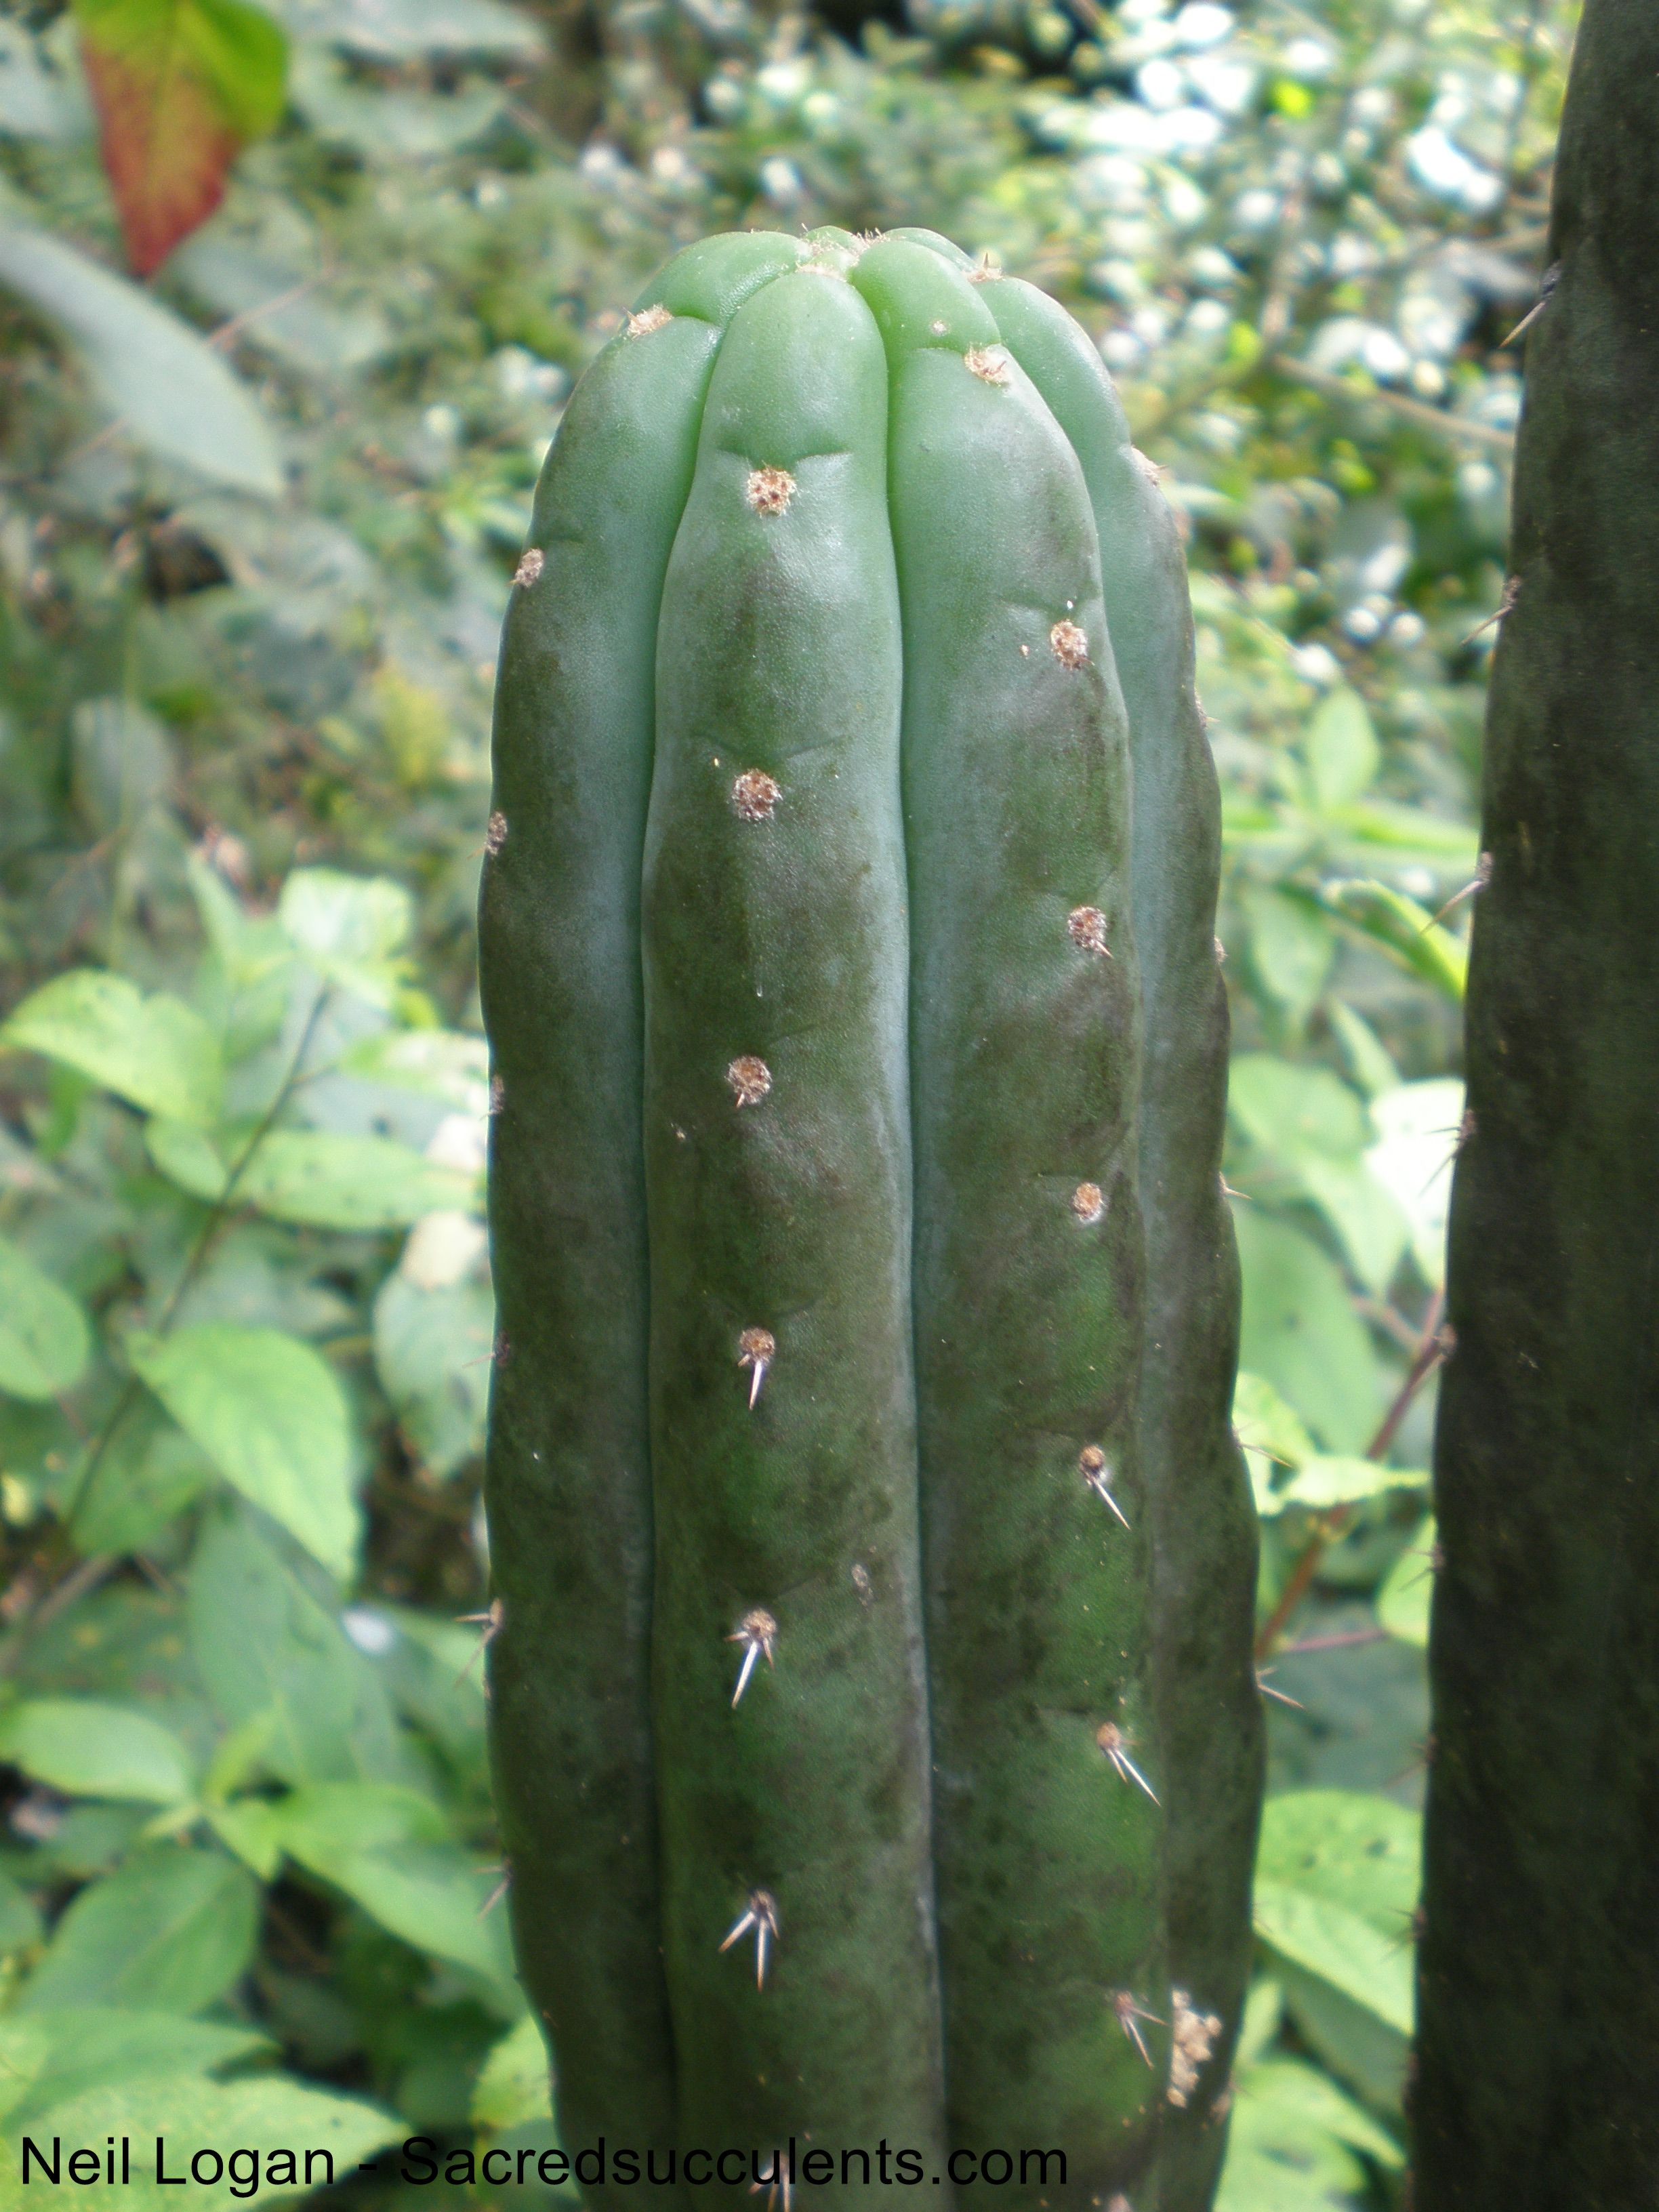 Photos of Trichocereus and Echinopsis pachanoi in Ecuador!